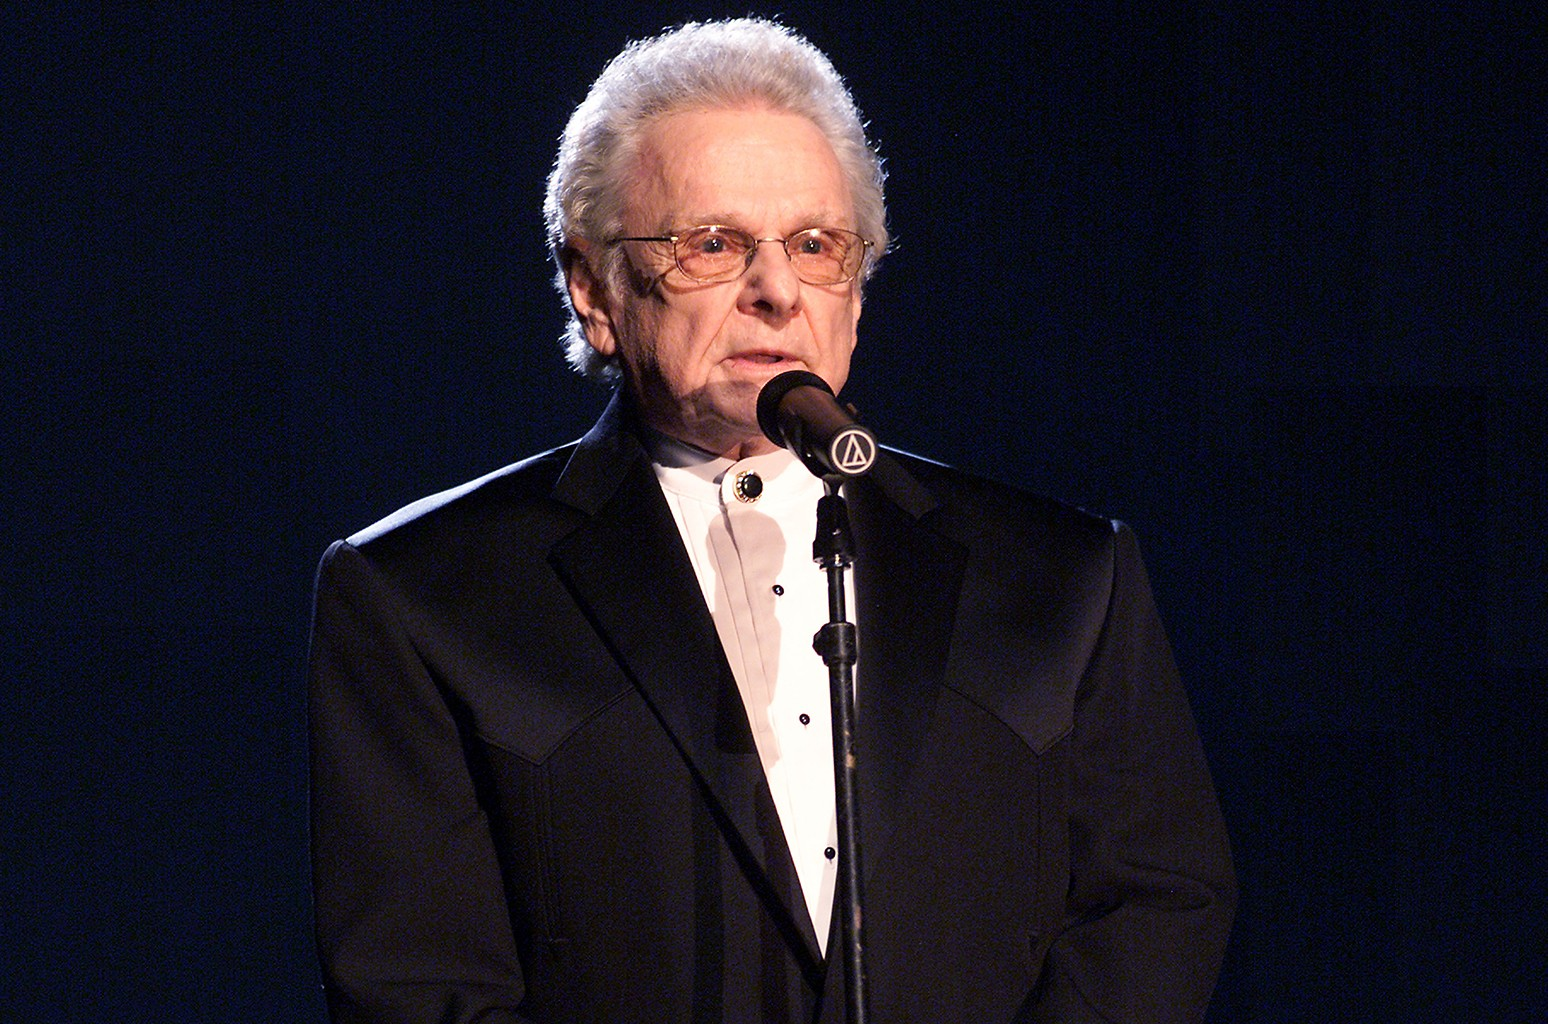 Ralph Stanley at the 44th Annual Grammy Awards